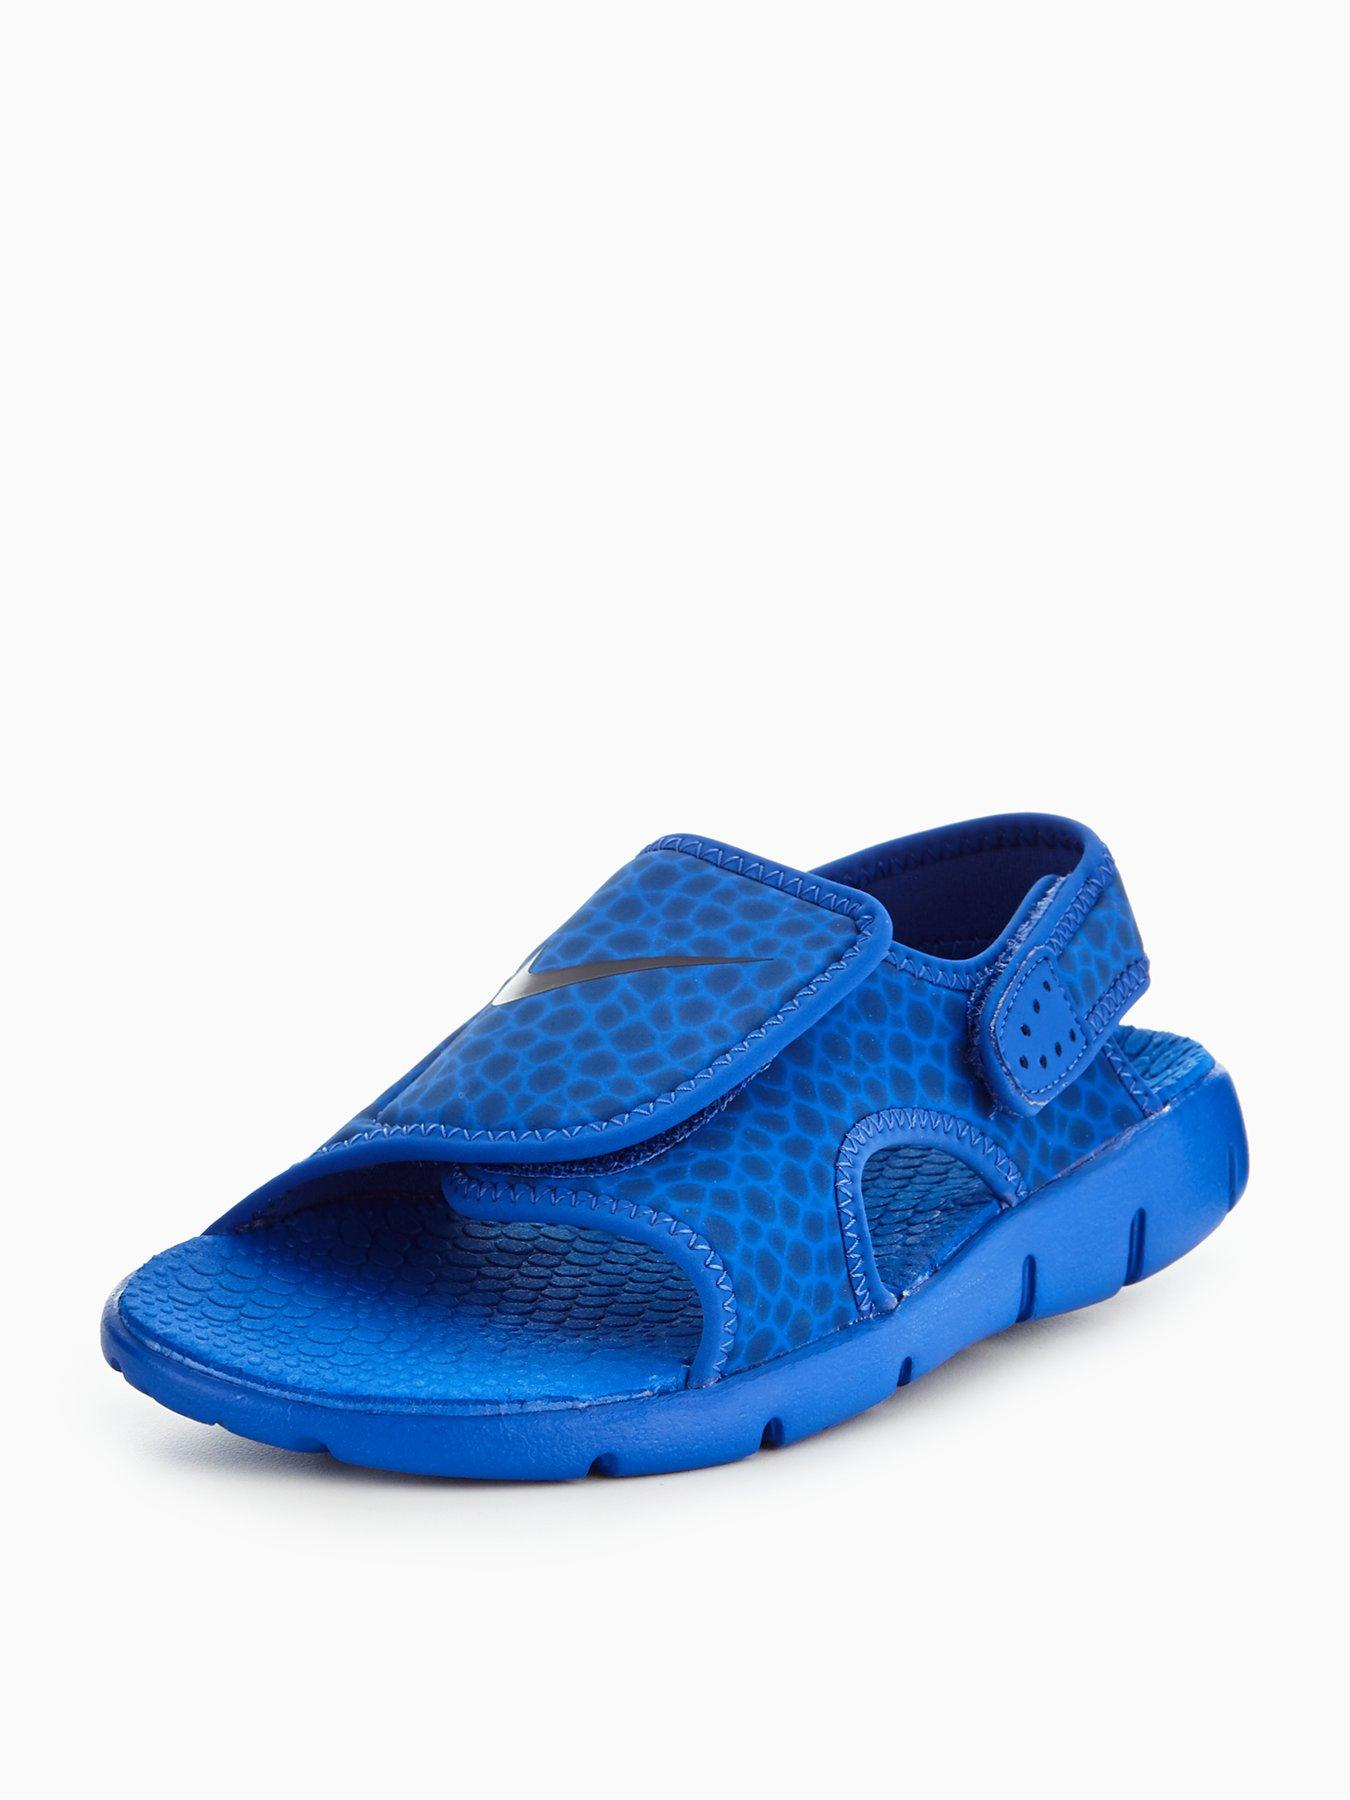 Nike Sunray Adjust 4 Childrens Sandal